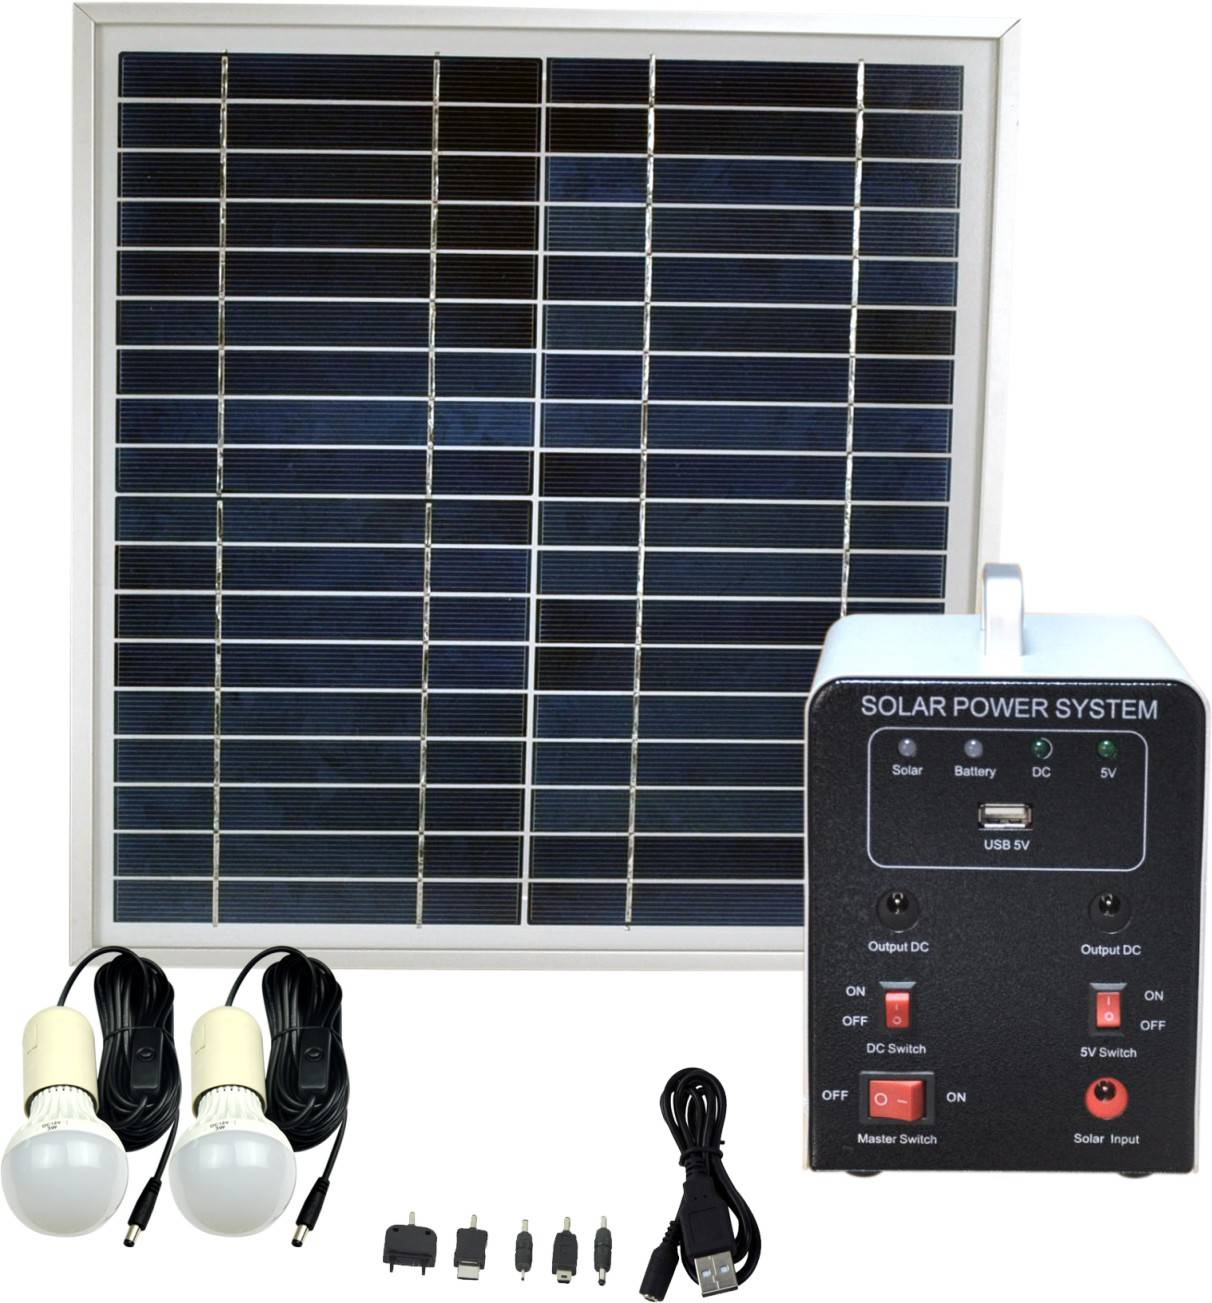 Portable DC 4W Solar Panel System Kit with 4AH AGM Battery for Lighting Mobile Phone Charging